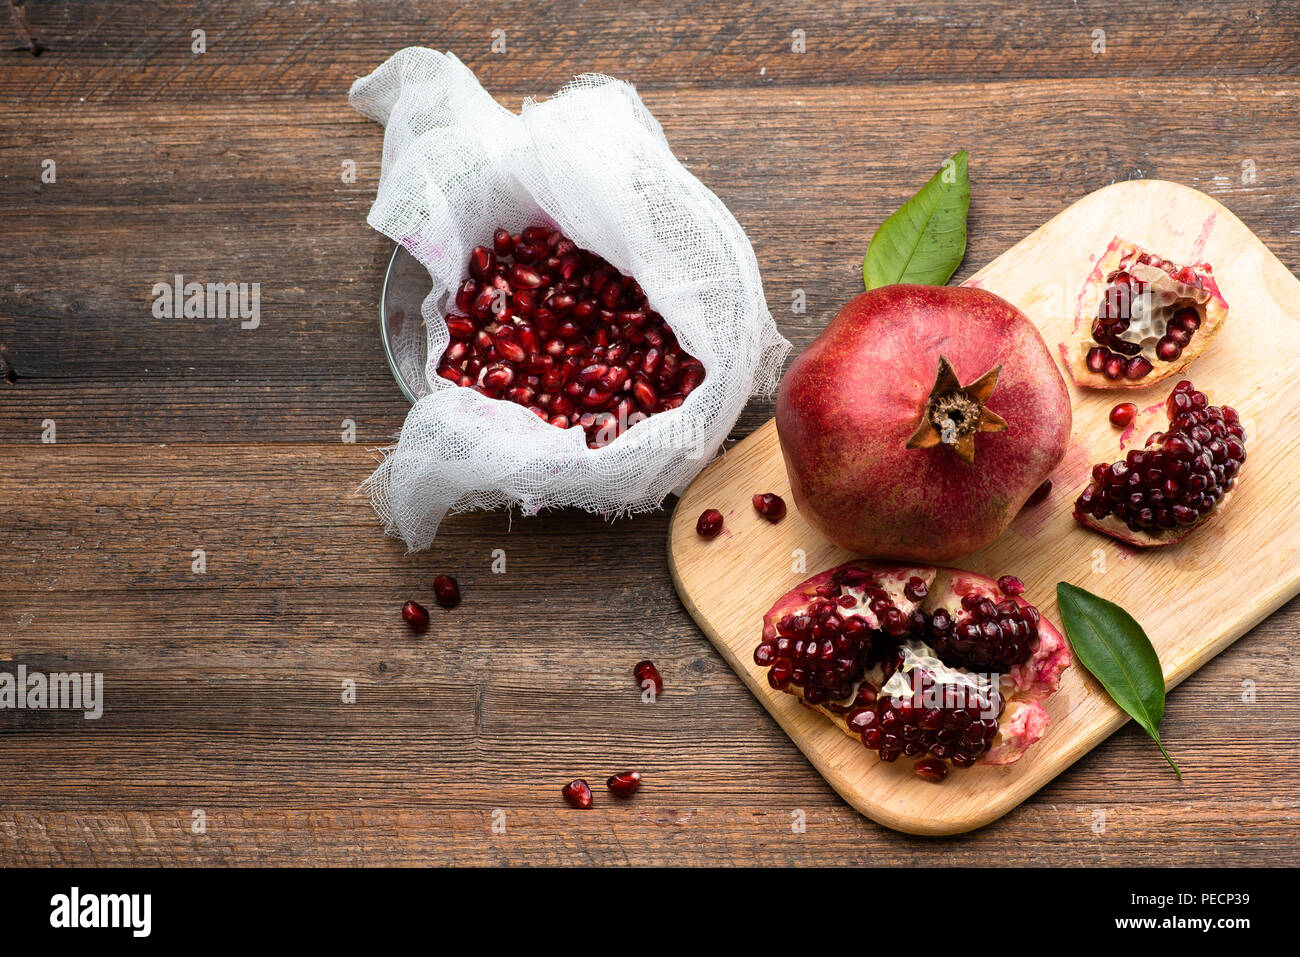 Pomegranate fruits with grains on wooden table. Top view. Make  juice. - Stock Image